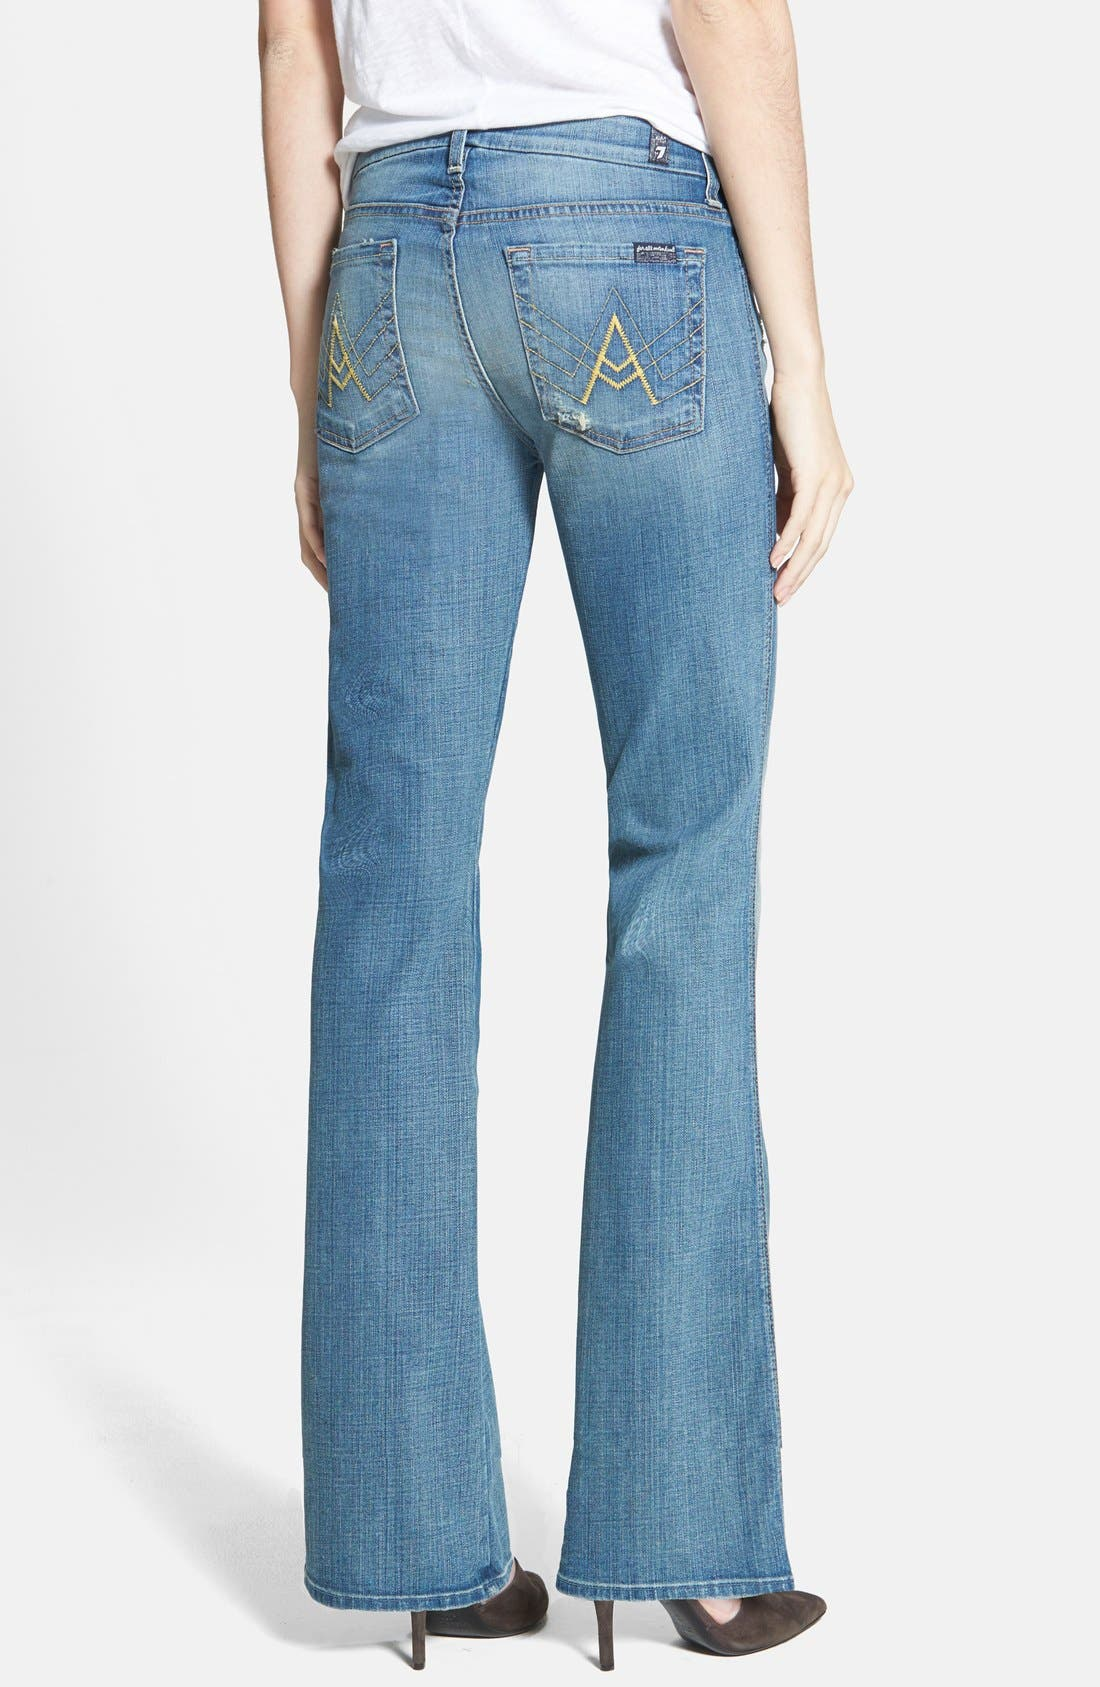 Alternate Image 2  - 7 For All Mankind® 'A Pocket' Bootcut Jeans (Dusty Vintage Blue)